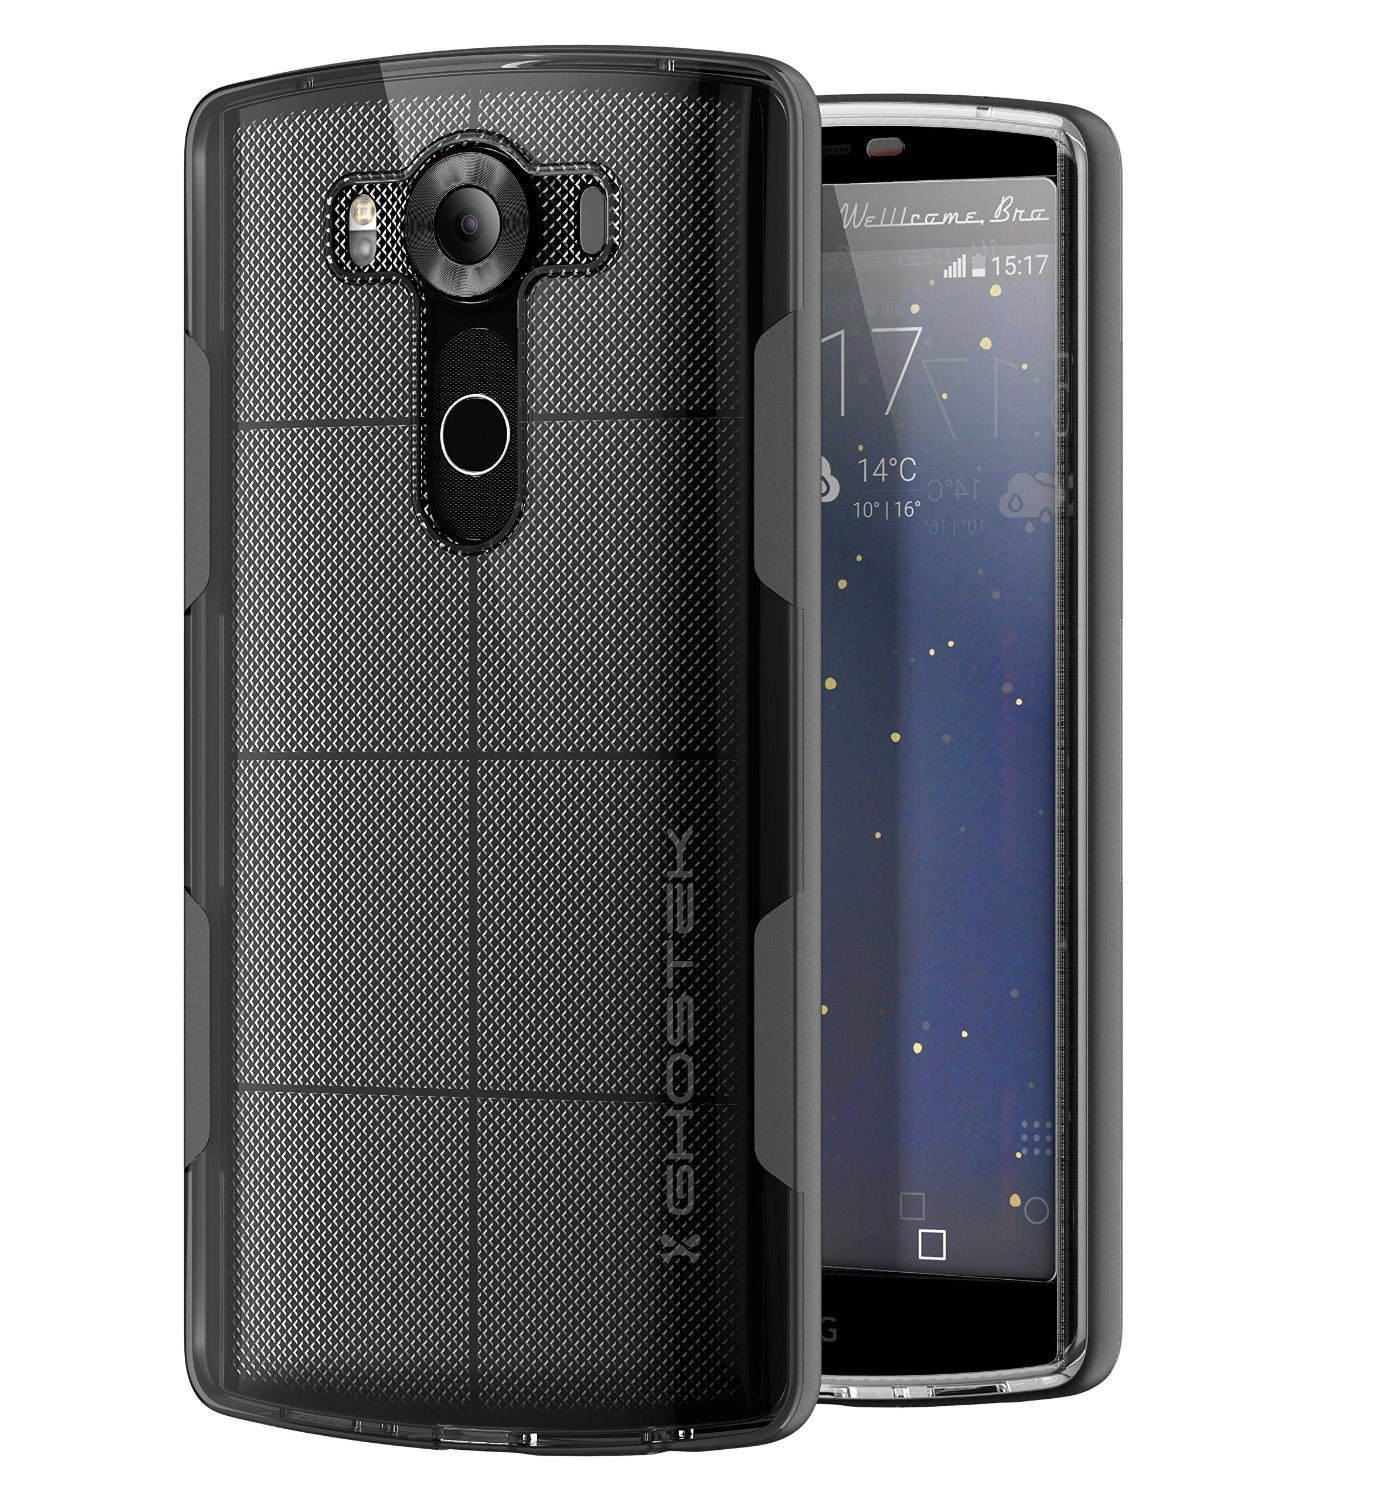 LG V10 Case, Ghostek® Cloak Black Slim Hybrid Impact Armor Cover | Lifetime Warranty Exchange - PunkCase NZ